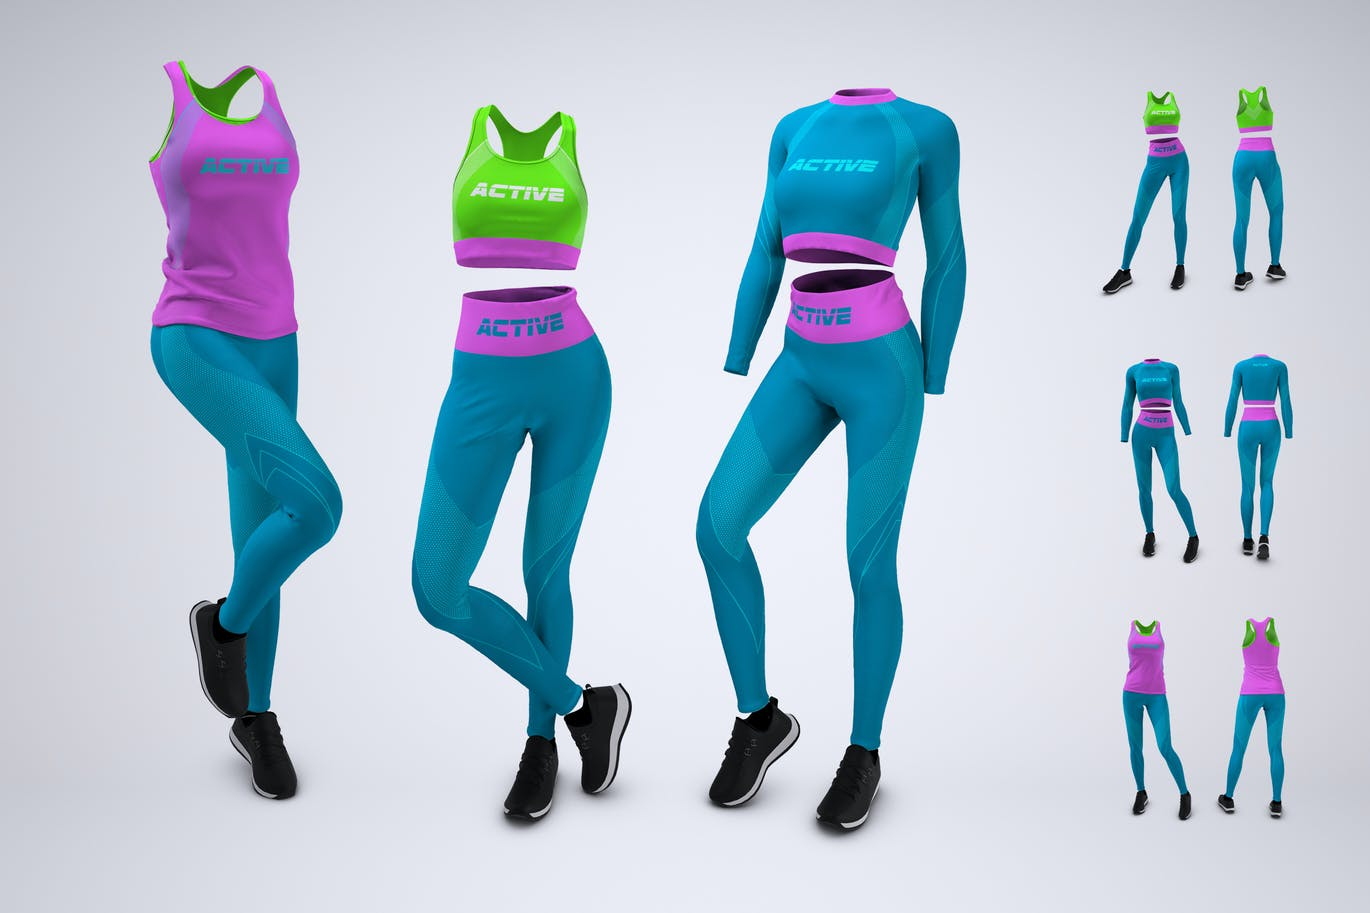 Woman's Workout Outfit Mock-Up